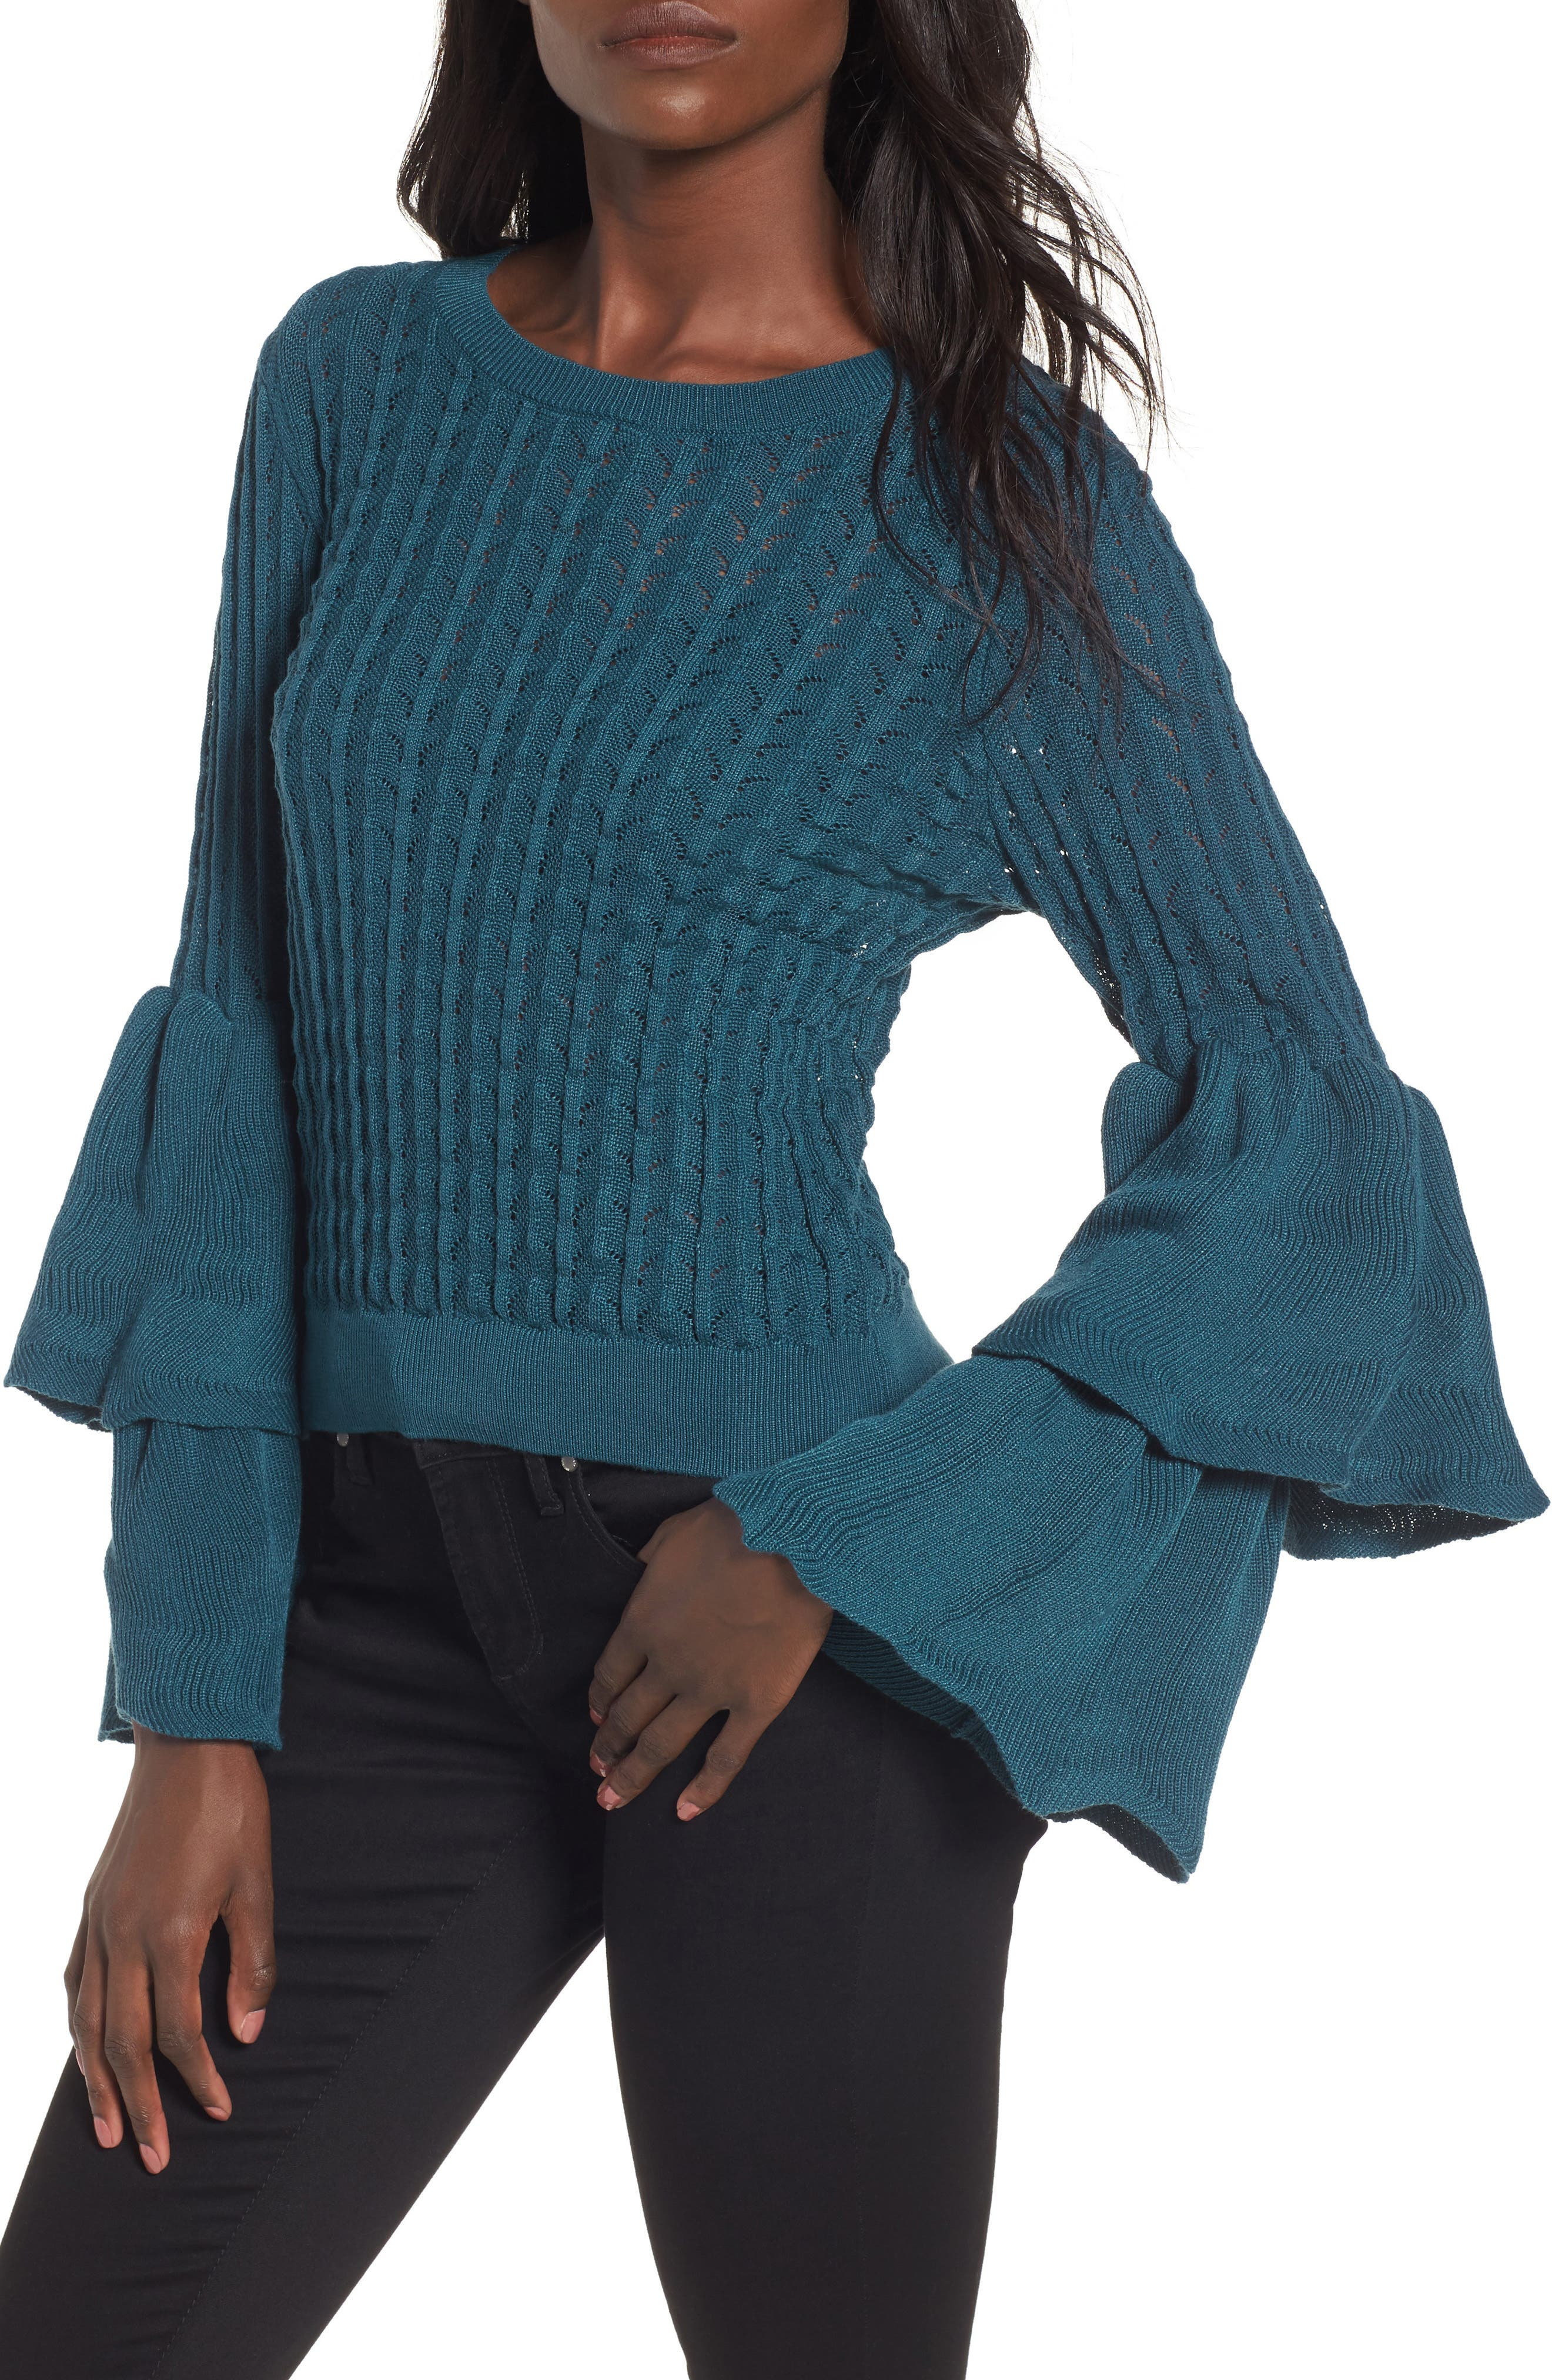 devlin Molly Ruffle Sweater